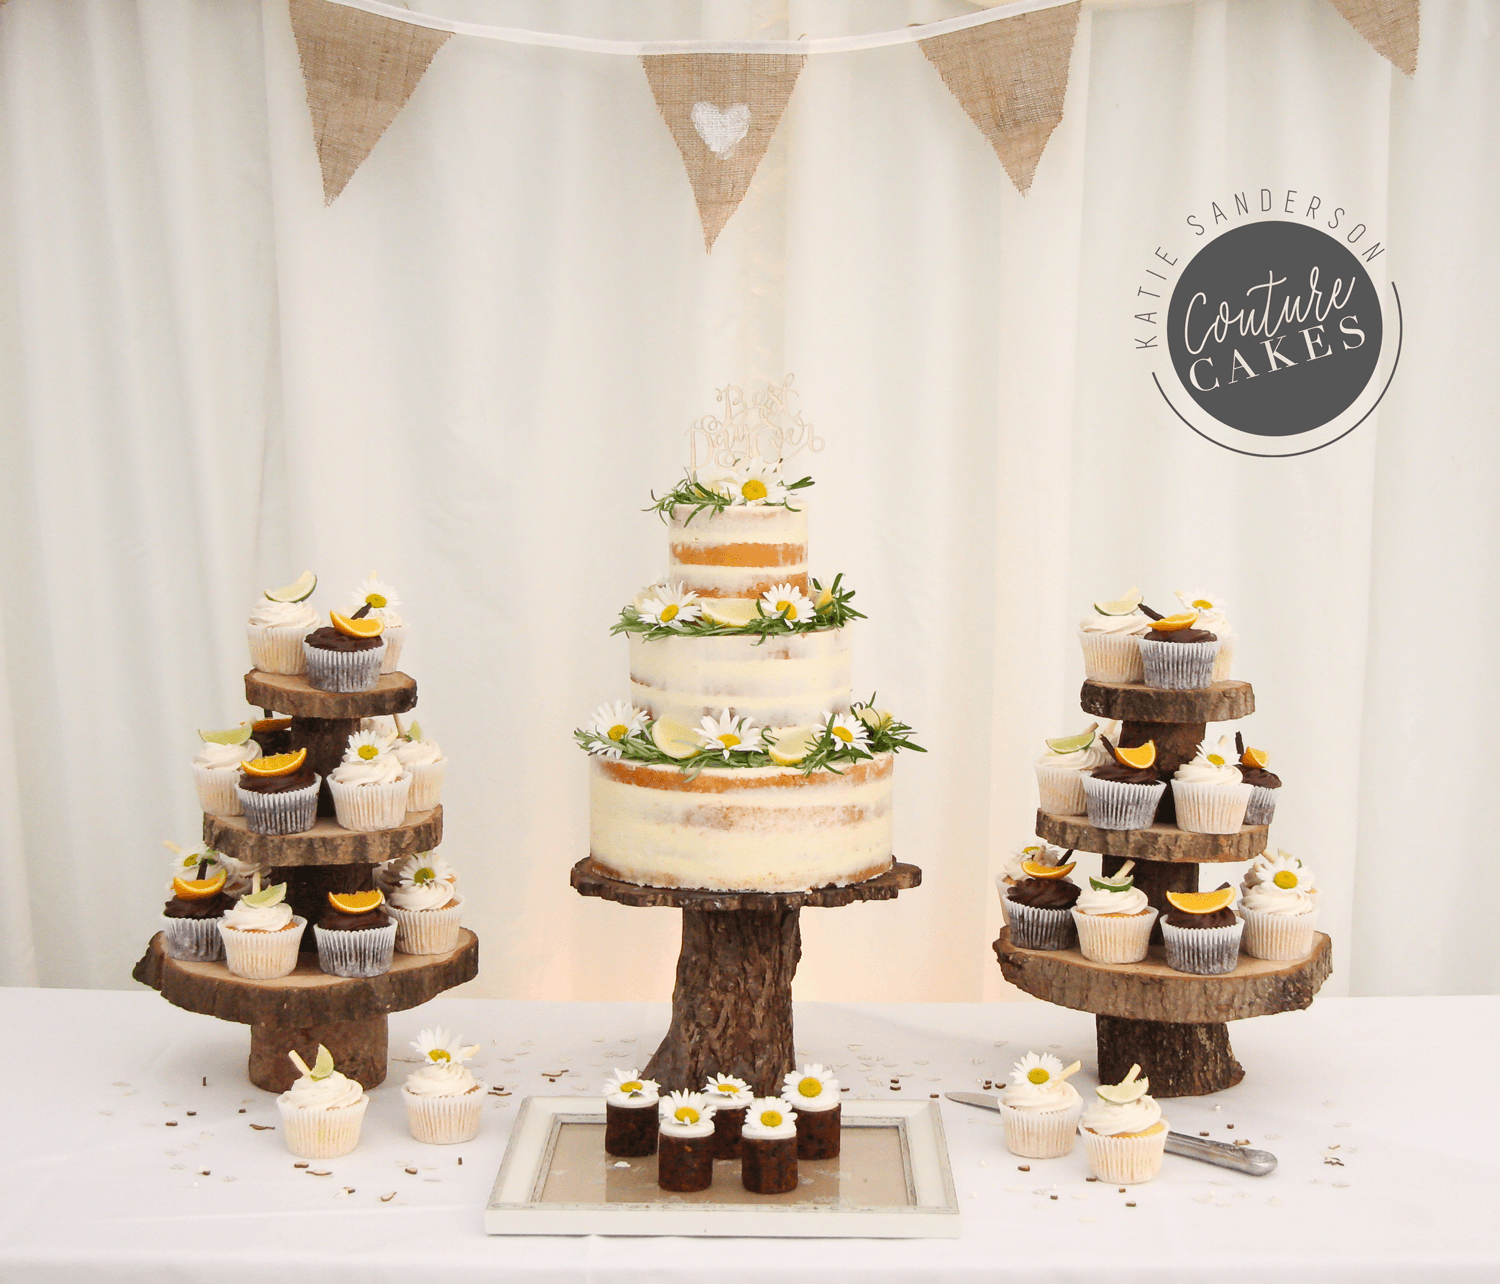 Naked Cake serves 110 portions, Price £335, plus 40 cupcakes at £3.50 each